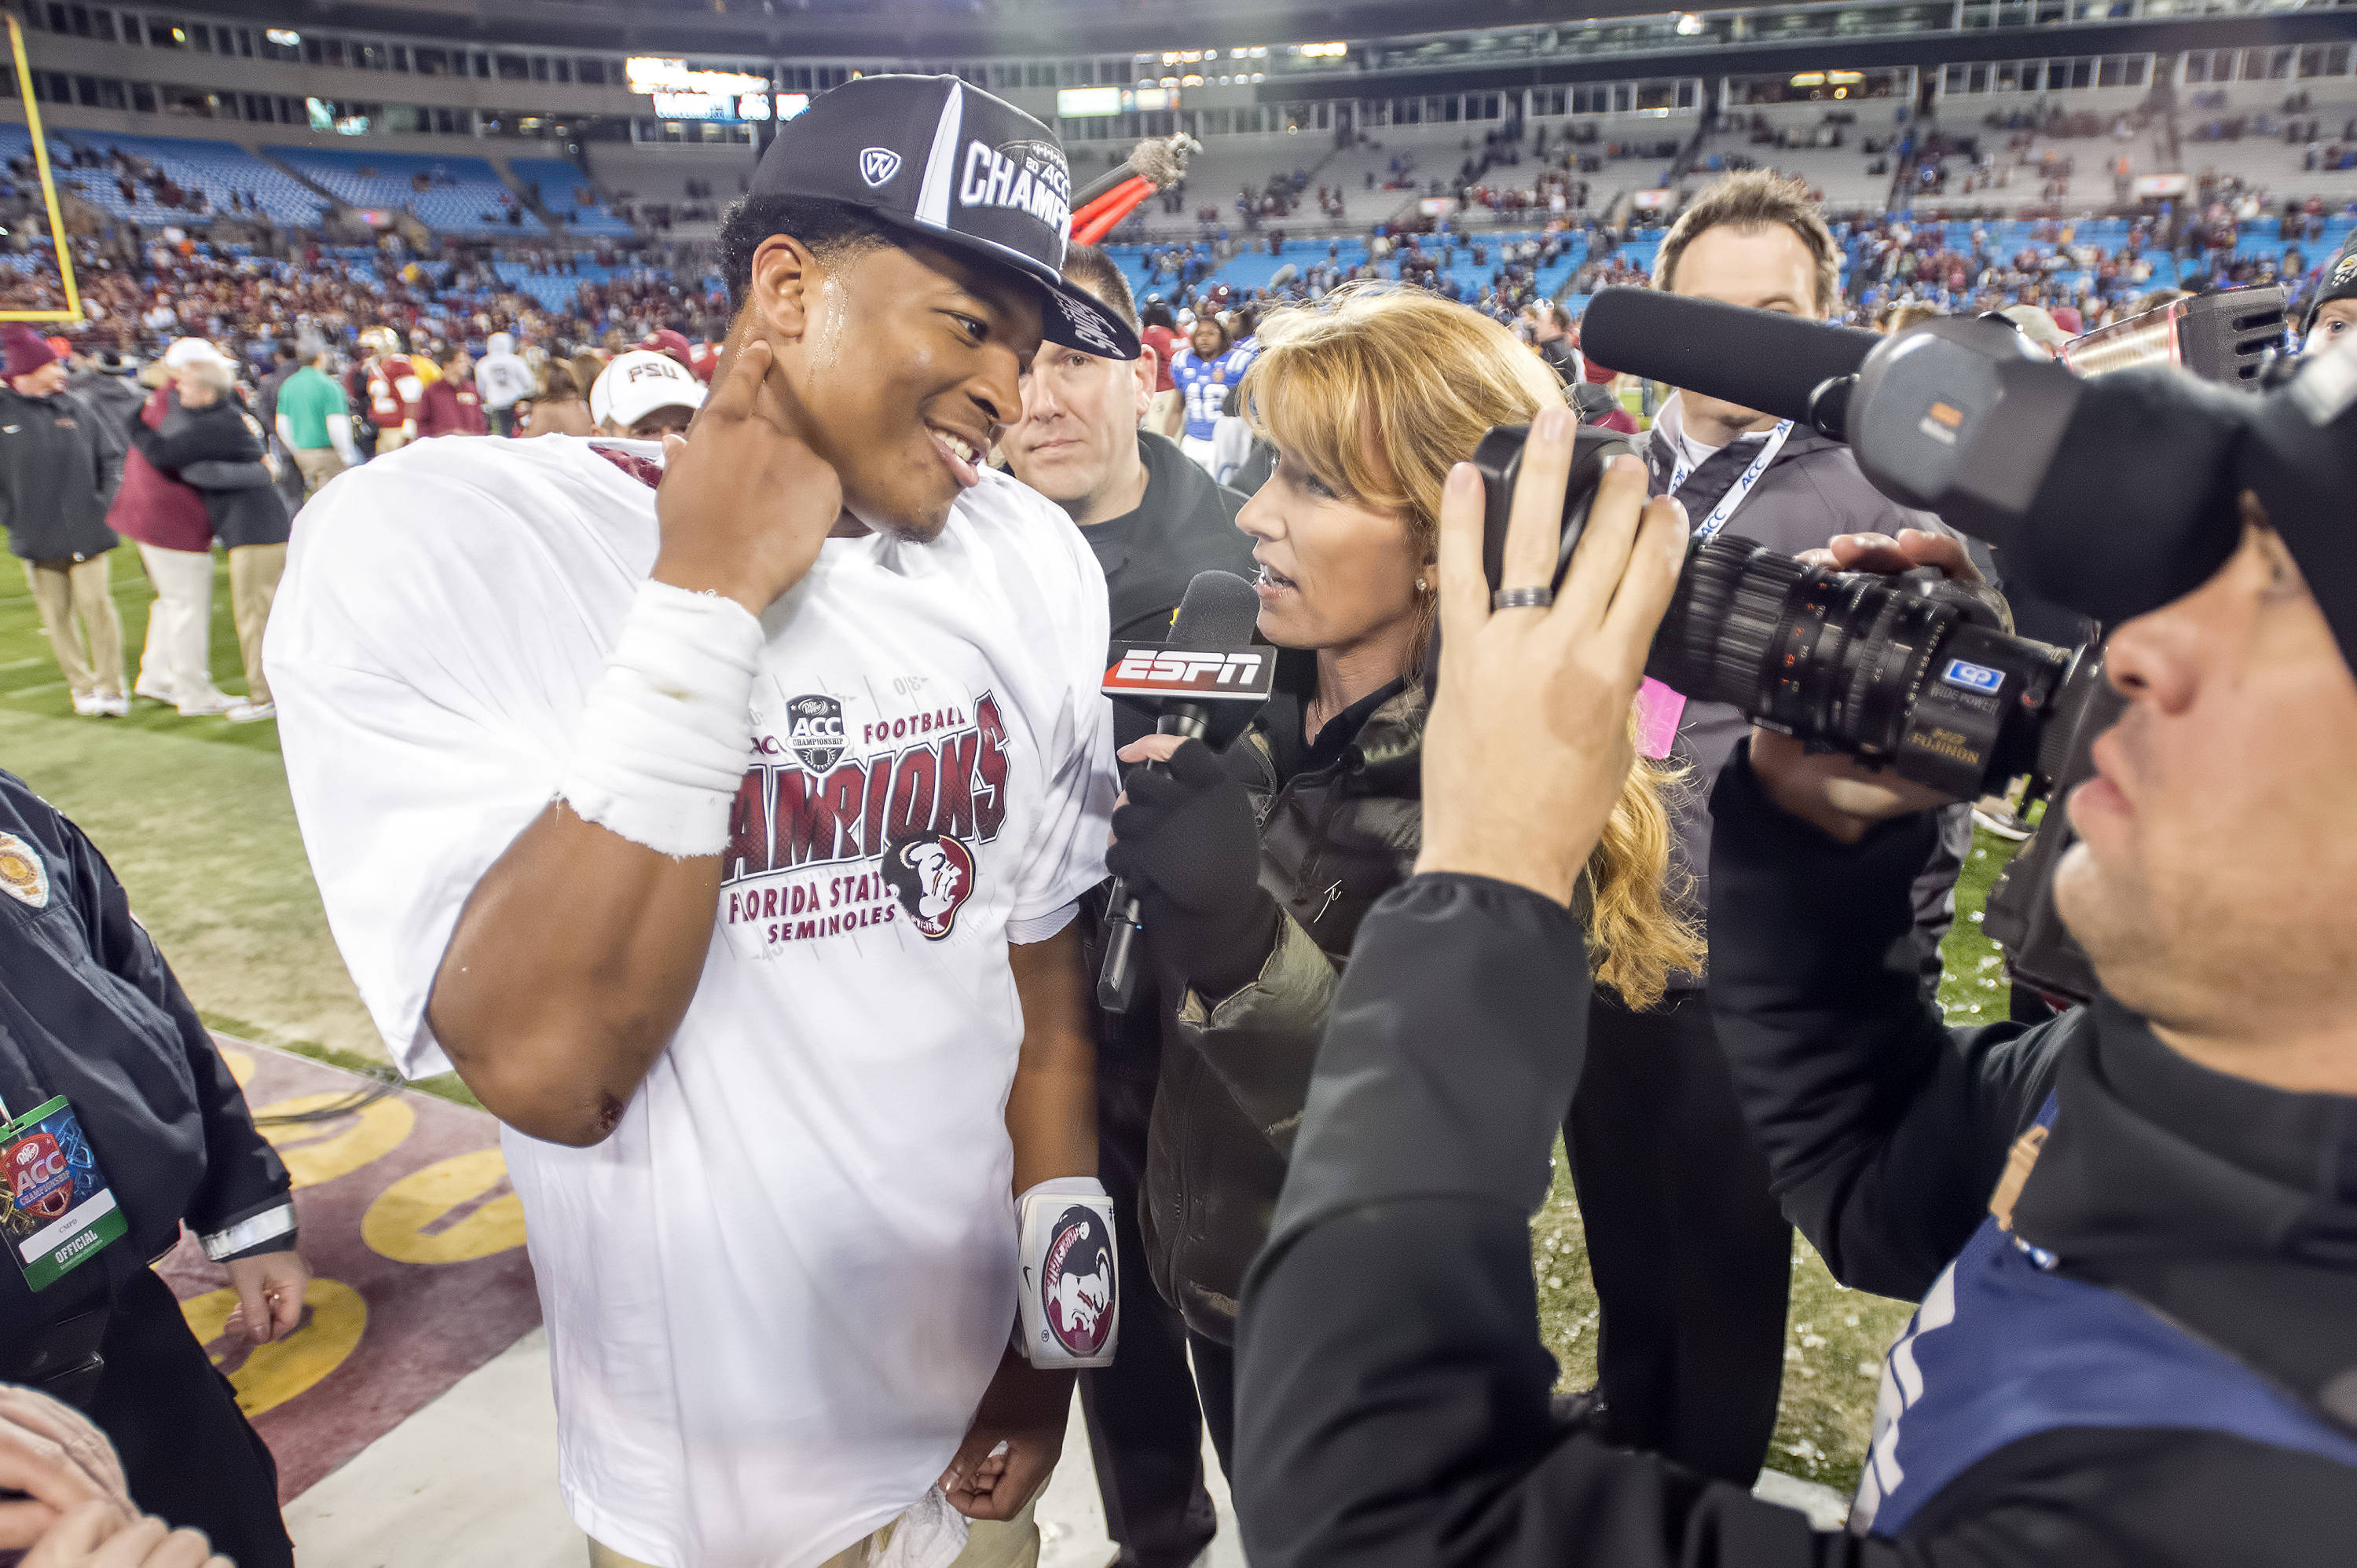 Jameis Winston is interviewed by ESPN at the end of the game